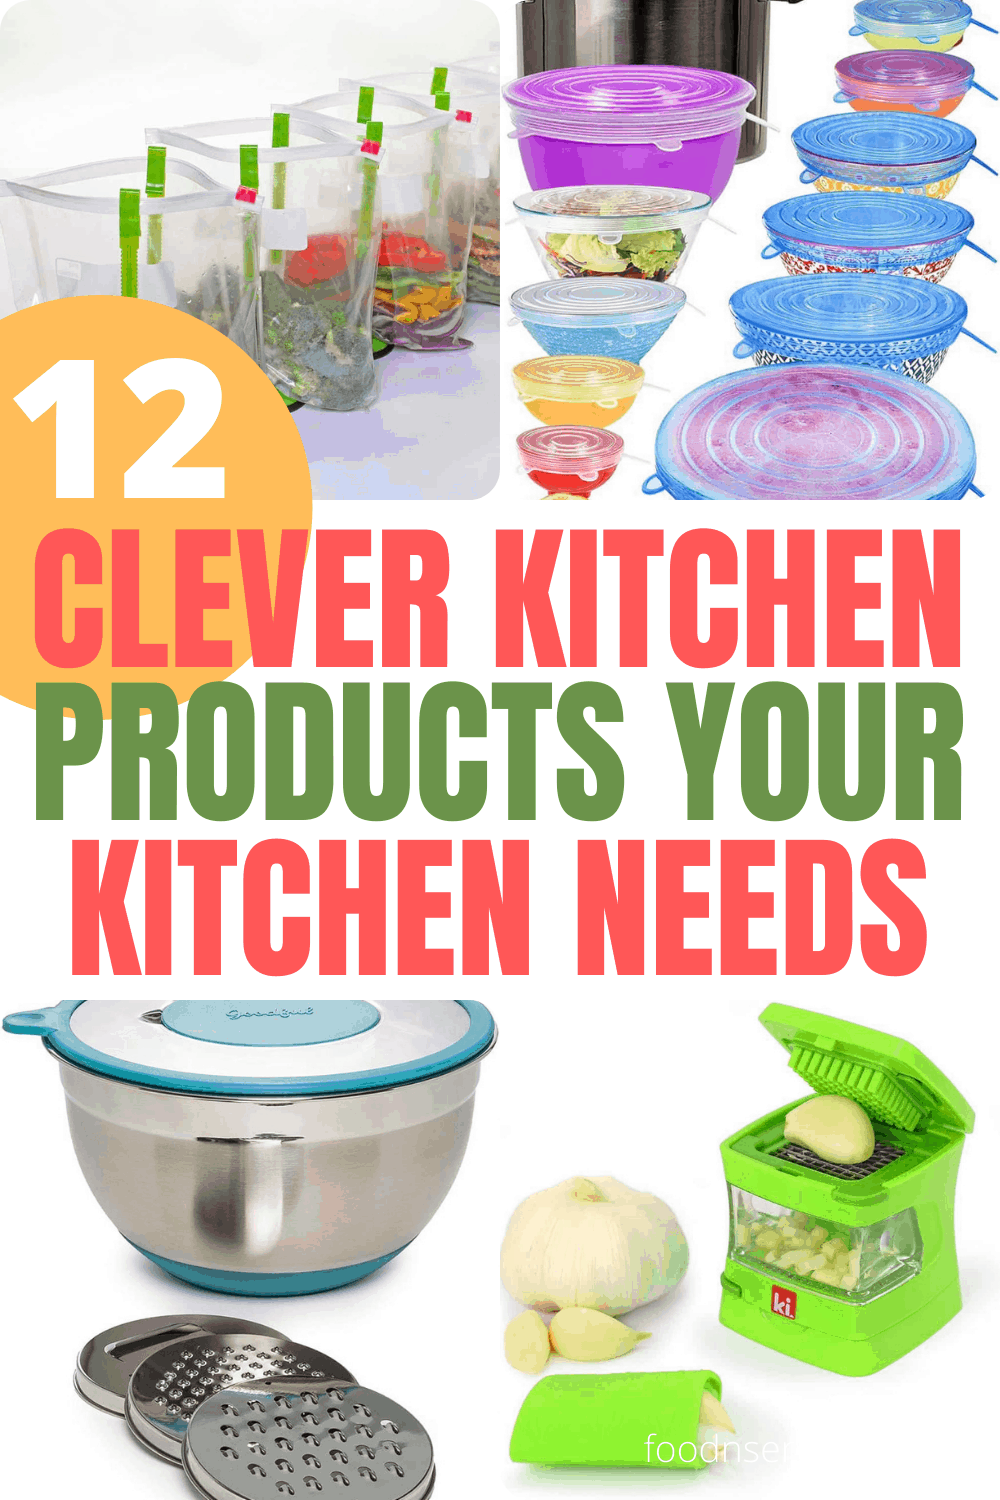 12 Clever Kitchen Products Your Kitchen Needs